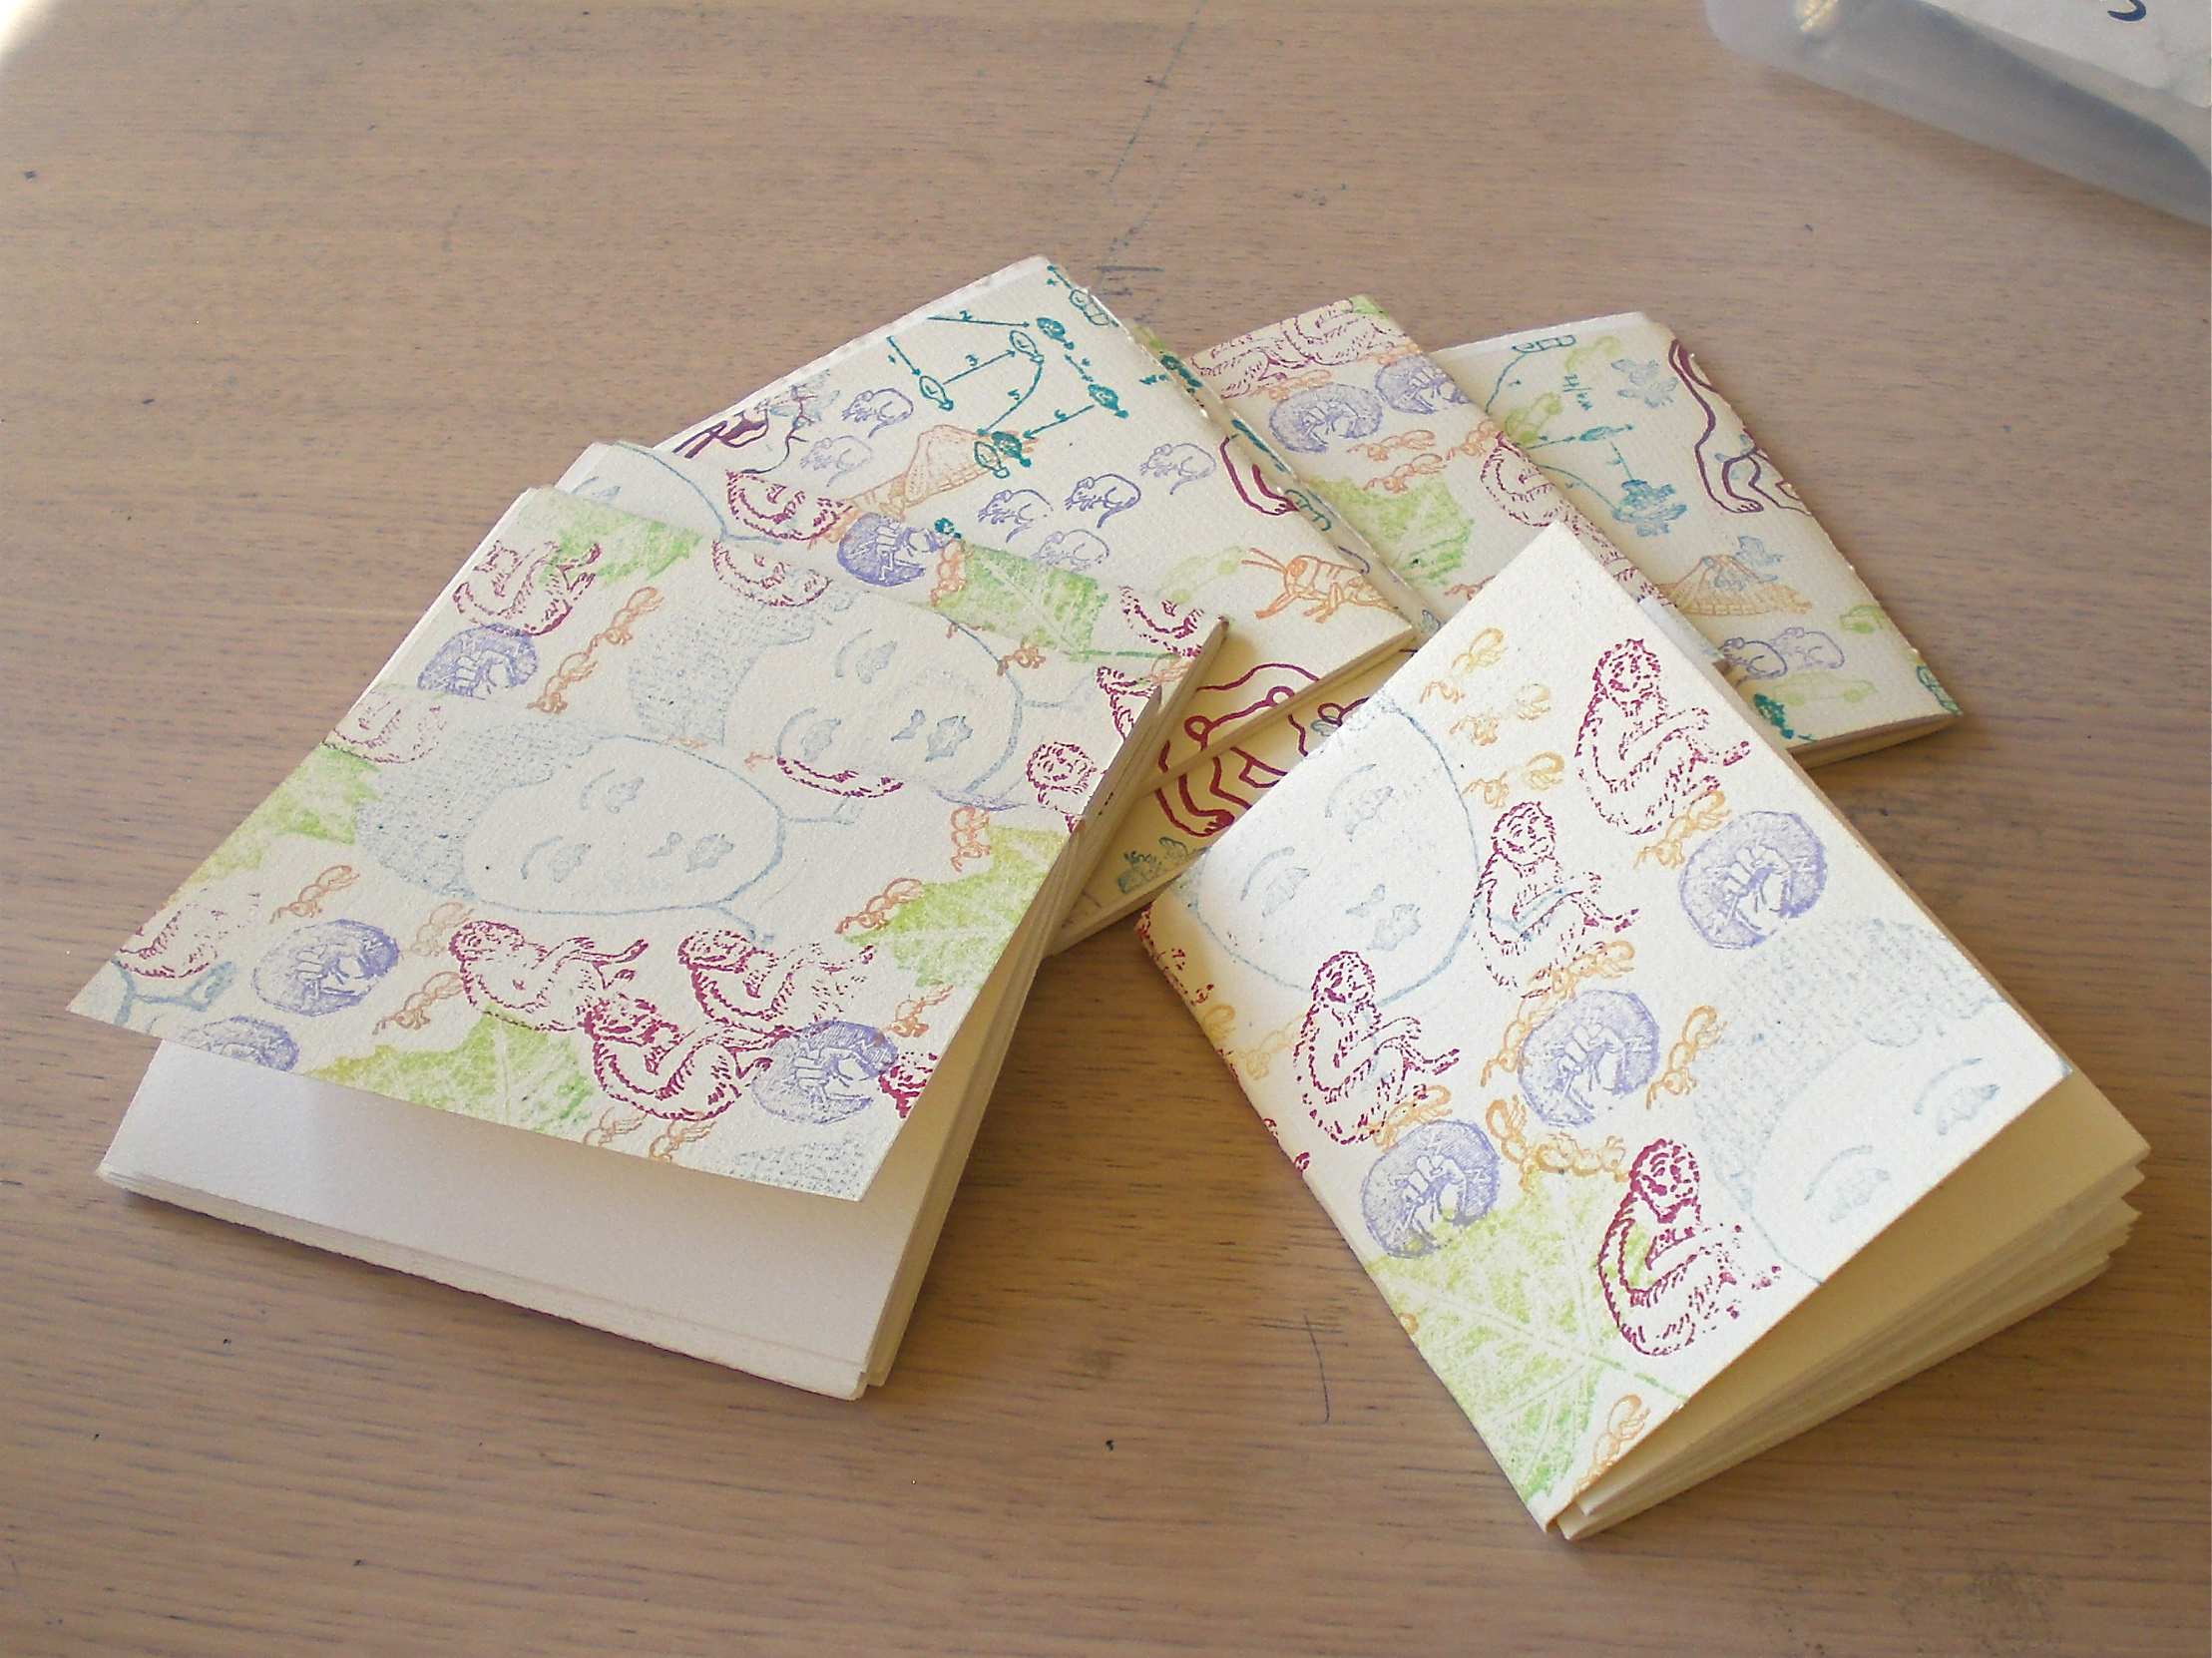 Hand Stamped pamphlet stitch notebooks made at the IPRC in 2009